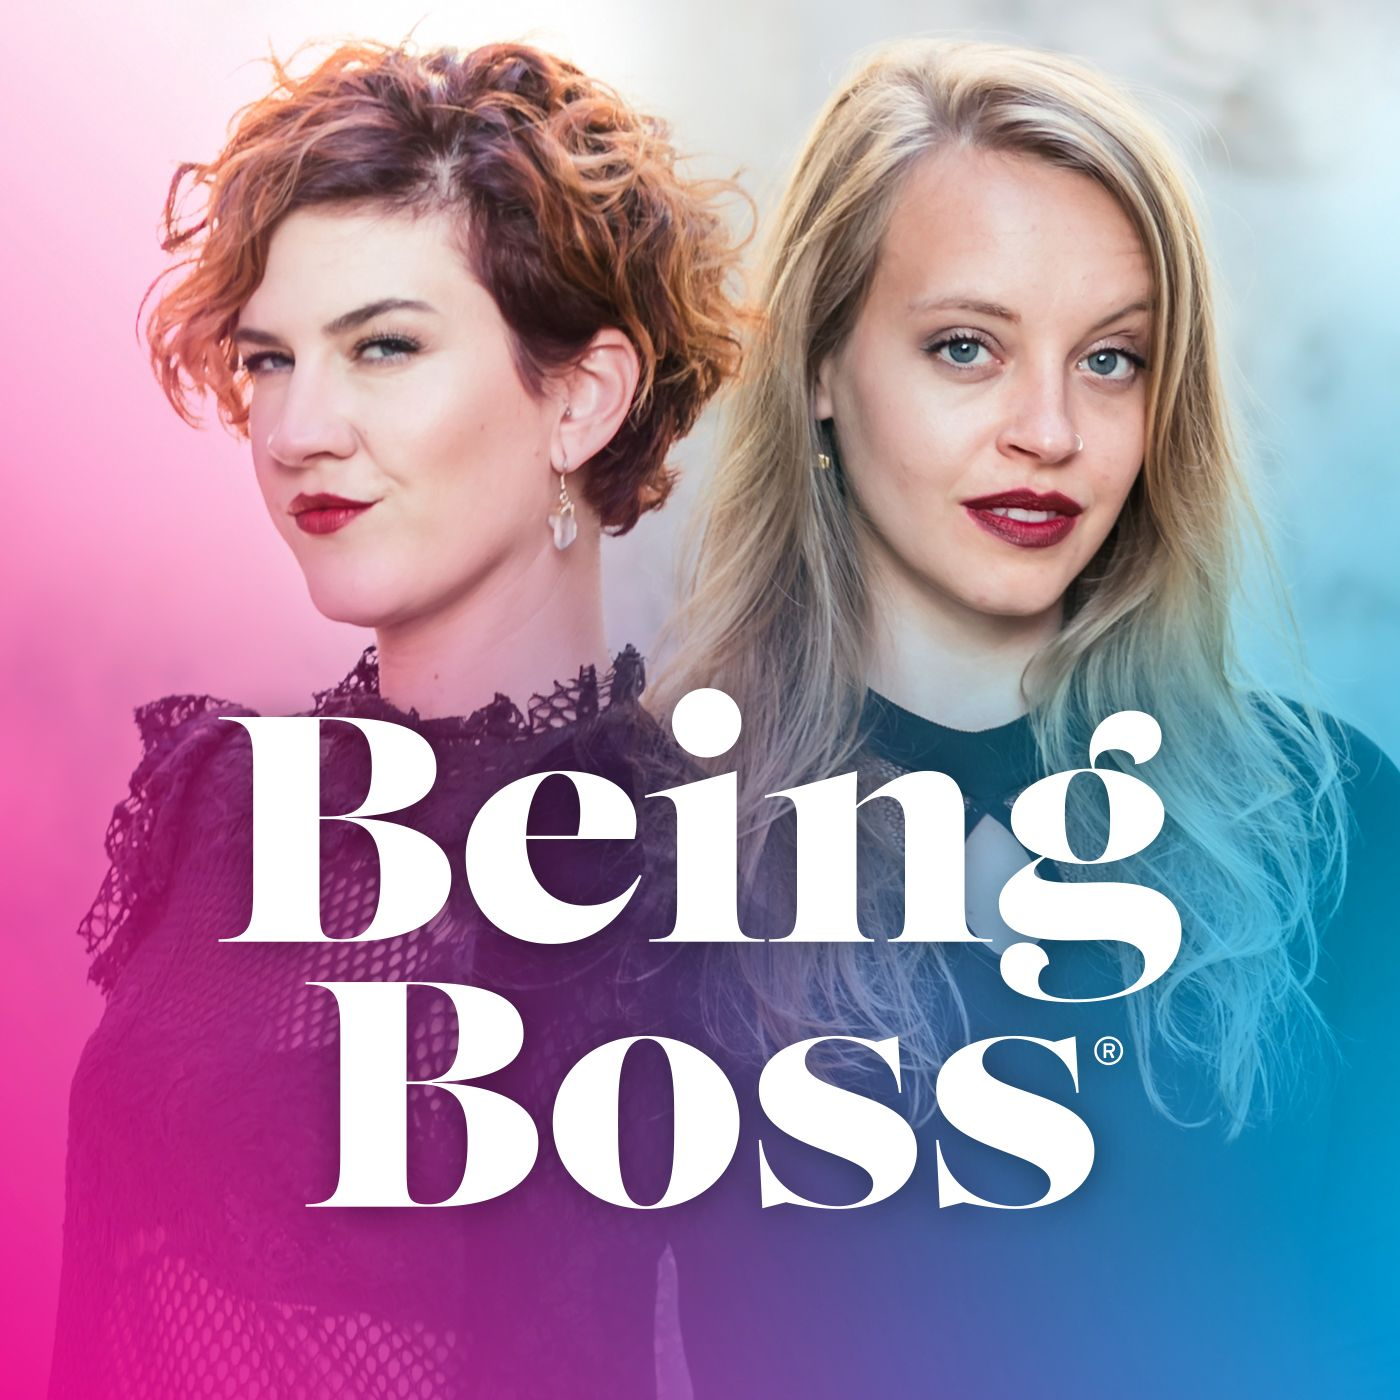 Being Boss PodcastHosted by Kathleen and Emily - These ladies are awesome! This podcast was a major game changer when it came to encouraging me to DO THE THING and leave my full-time job! They talk about pricing, communicating with clients, landing jobs, being the CEO of your biz and loads more.